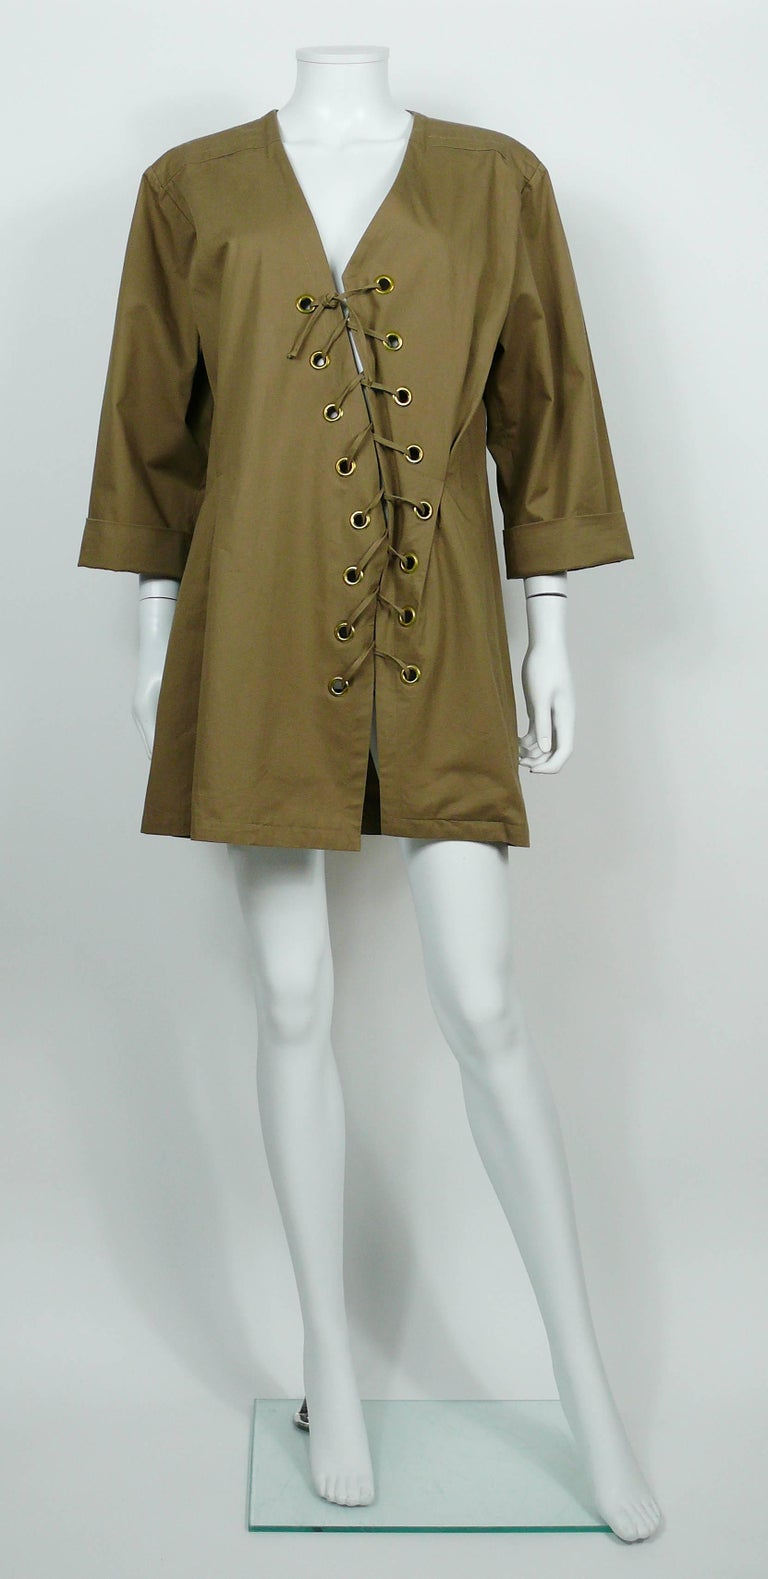 Yves Saint Laurent YSL Iconic Vintage Cotton Safari Tunic Dress, 1990s  4